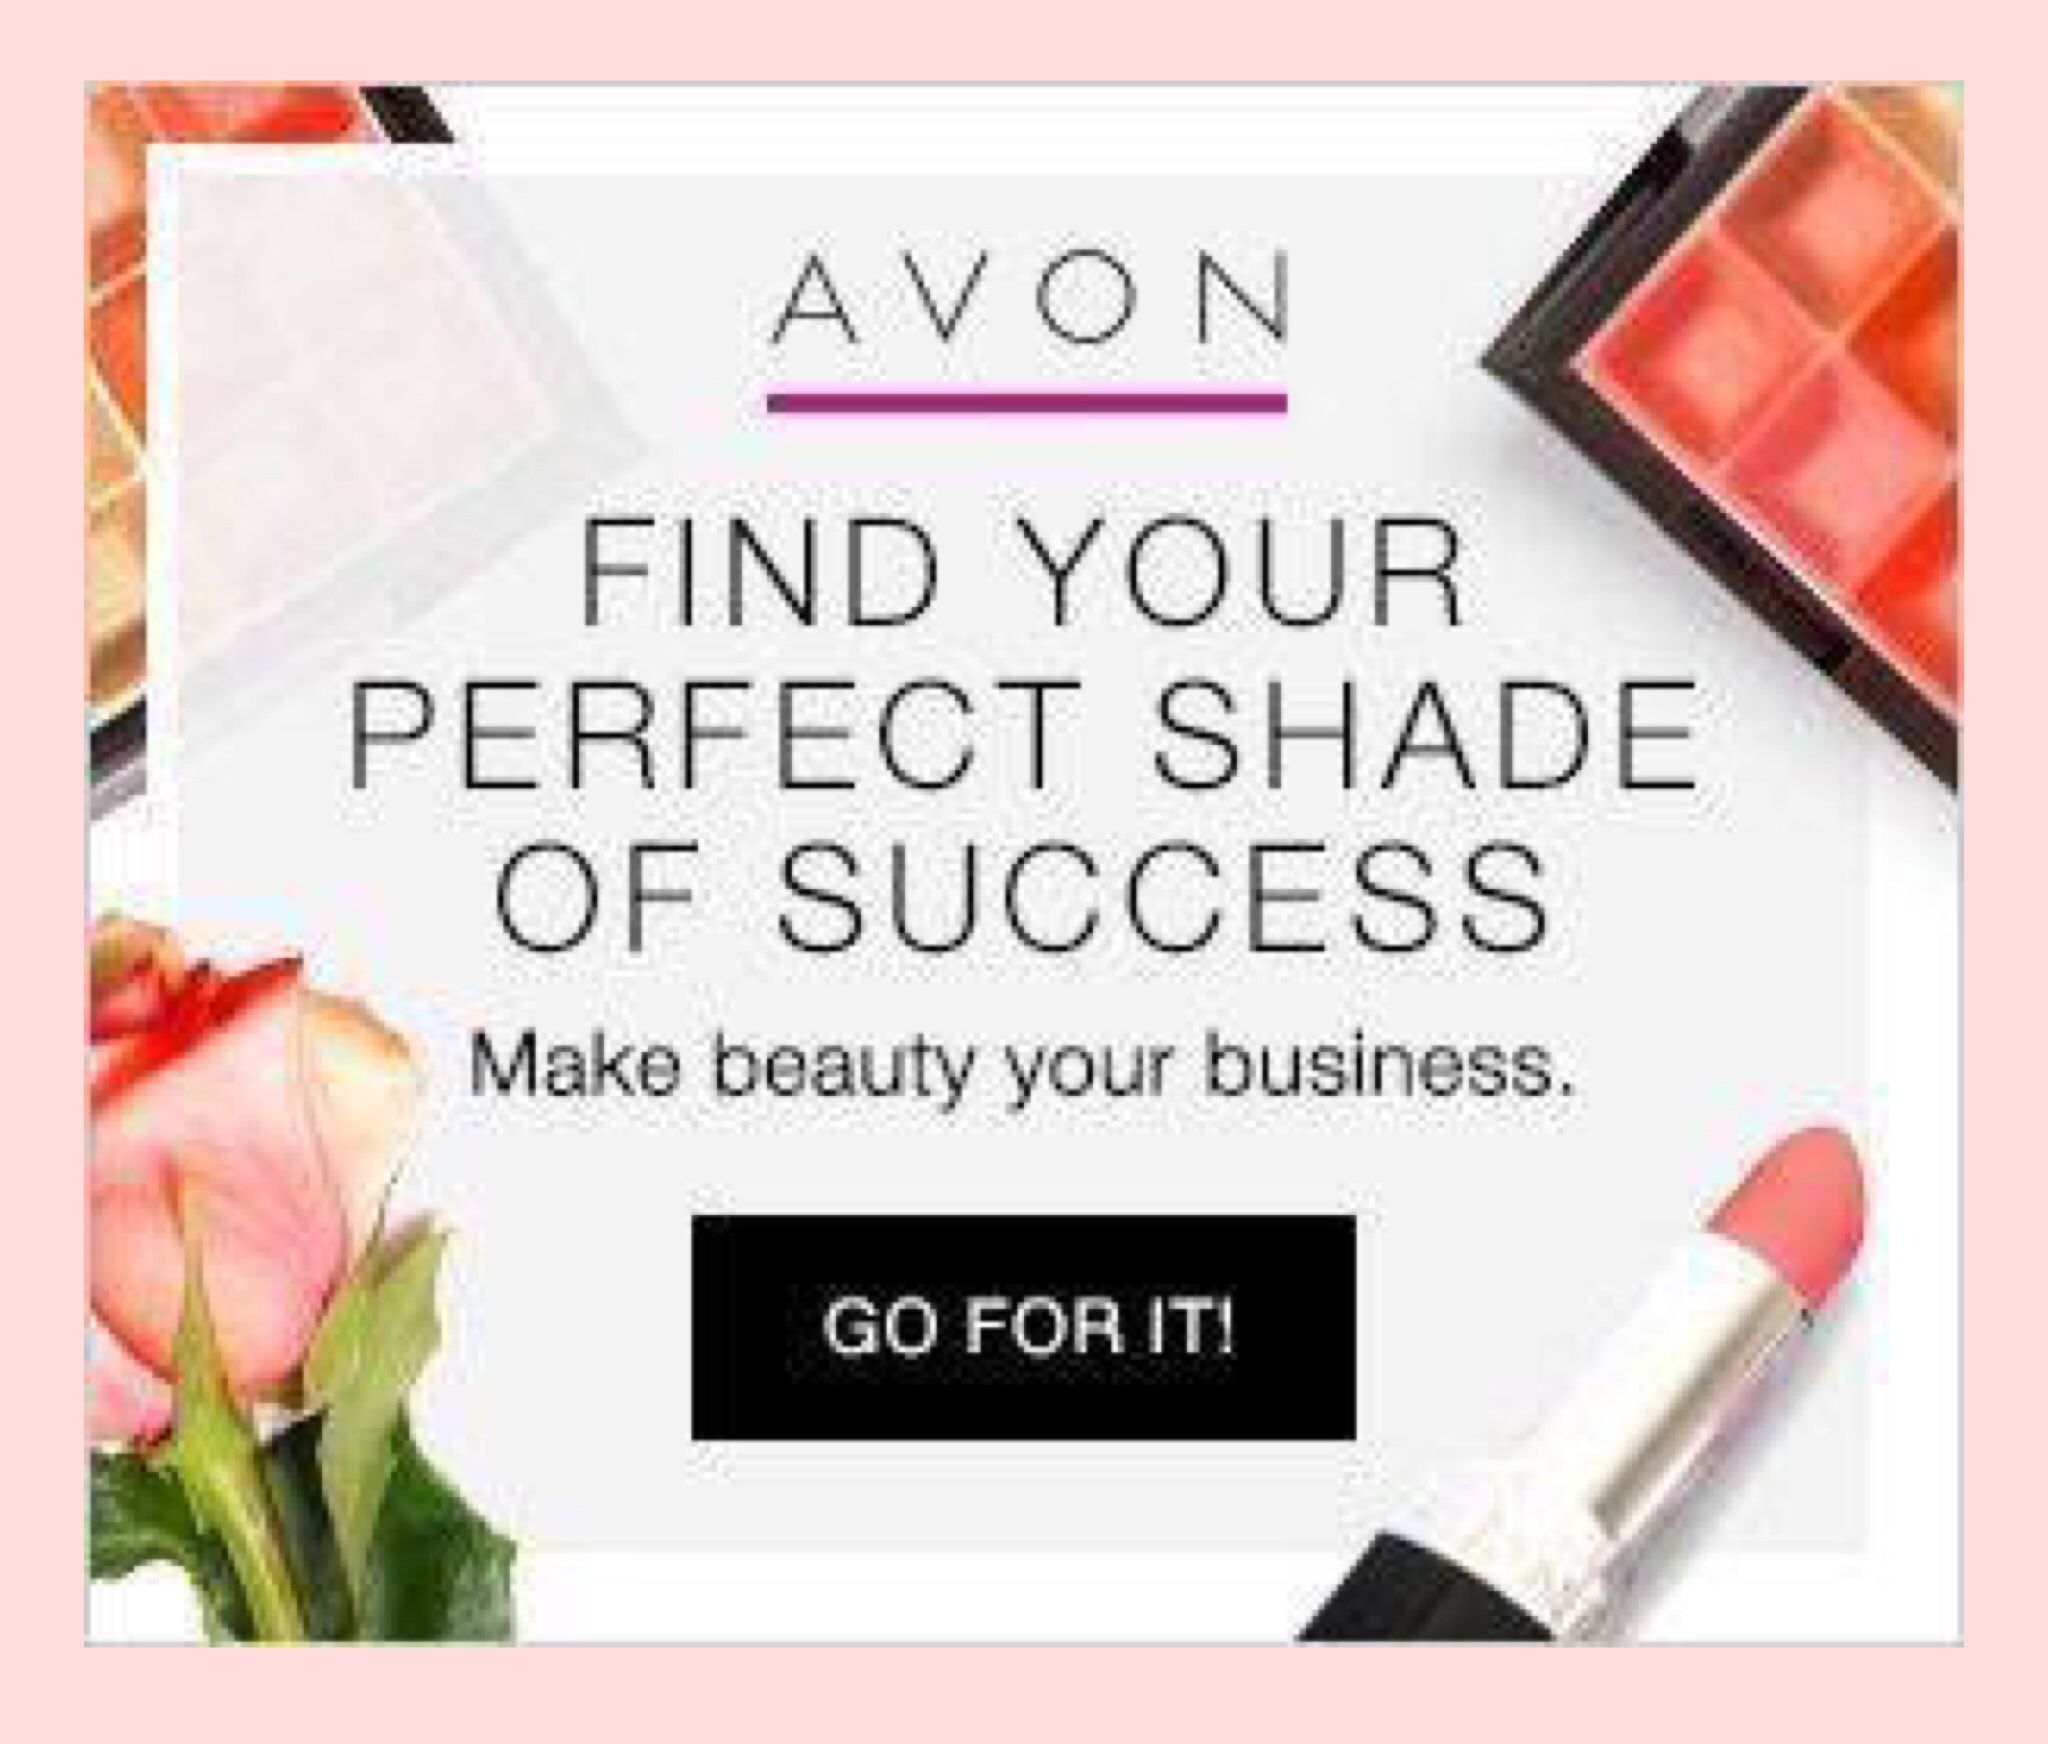 be your own boss make your own schedule sell avon work from